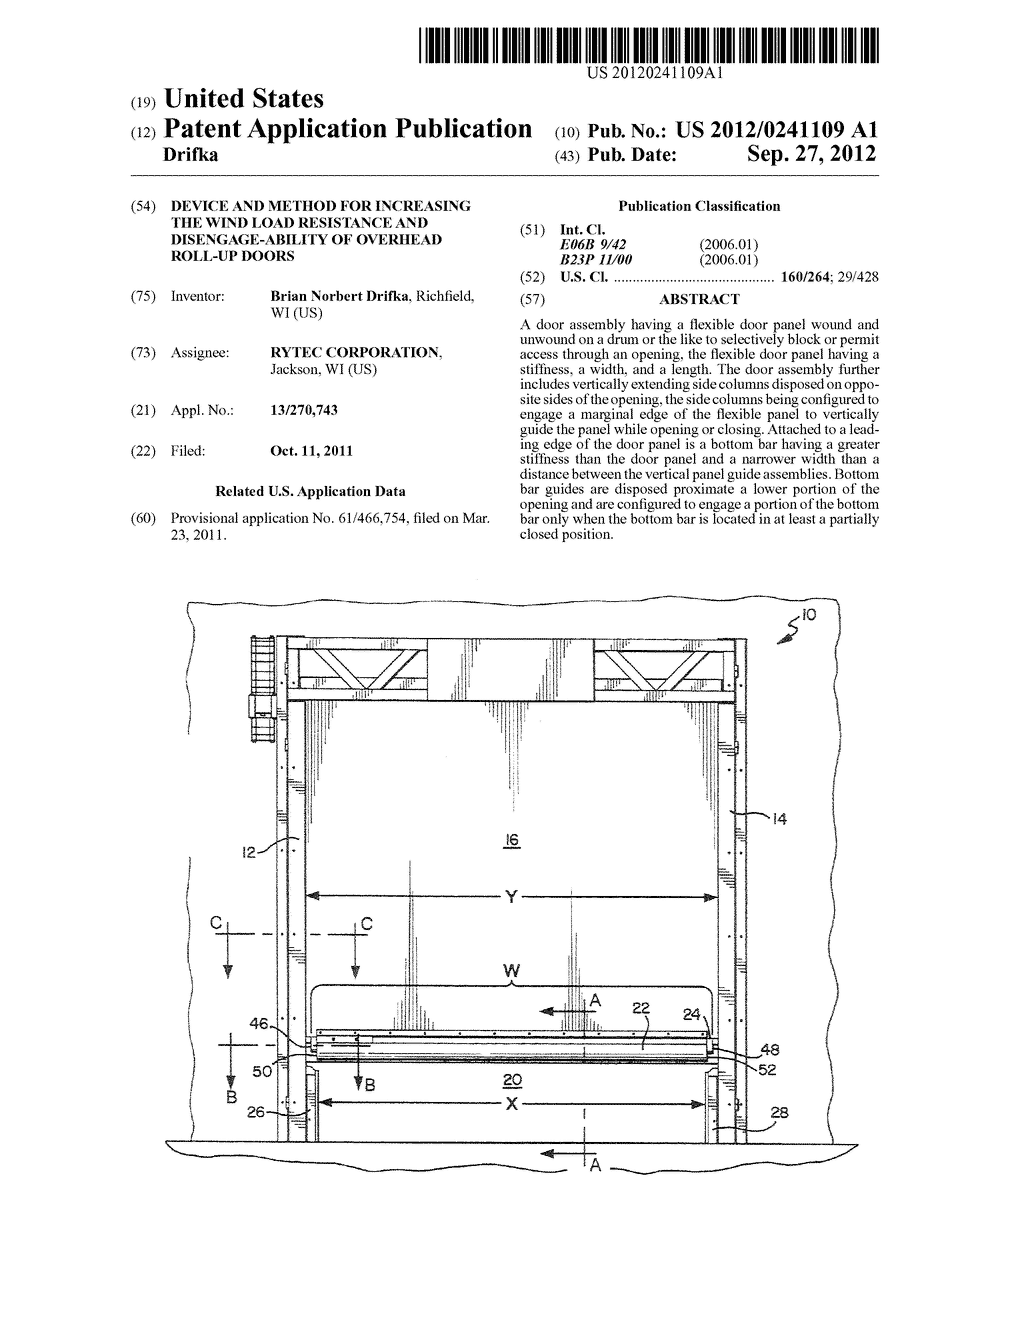 DEVICE AND METHOD FOR INCREASING THE WIND LOAD RESISTANCE AND     DISENGAGE-ABILITY OF OVERHEAD ROLL-UP DOORS - diagram, schematic, and image 01